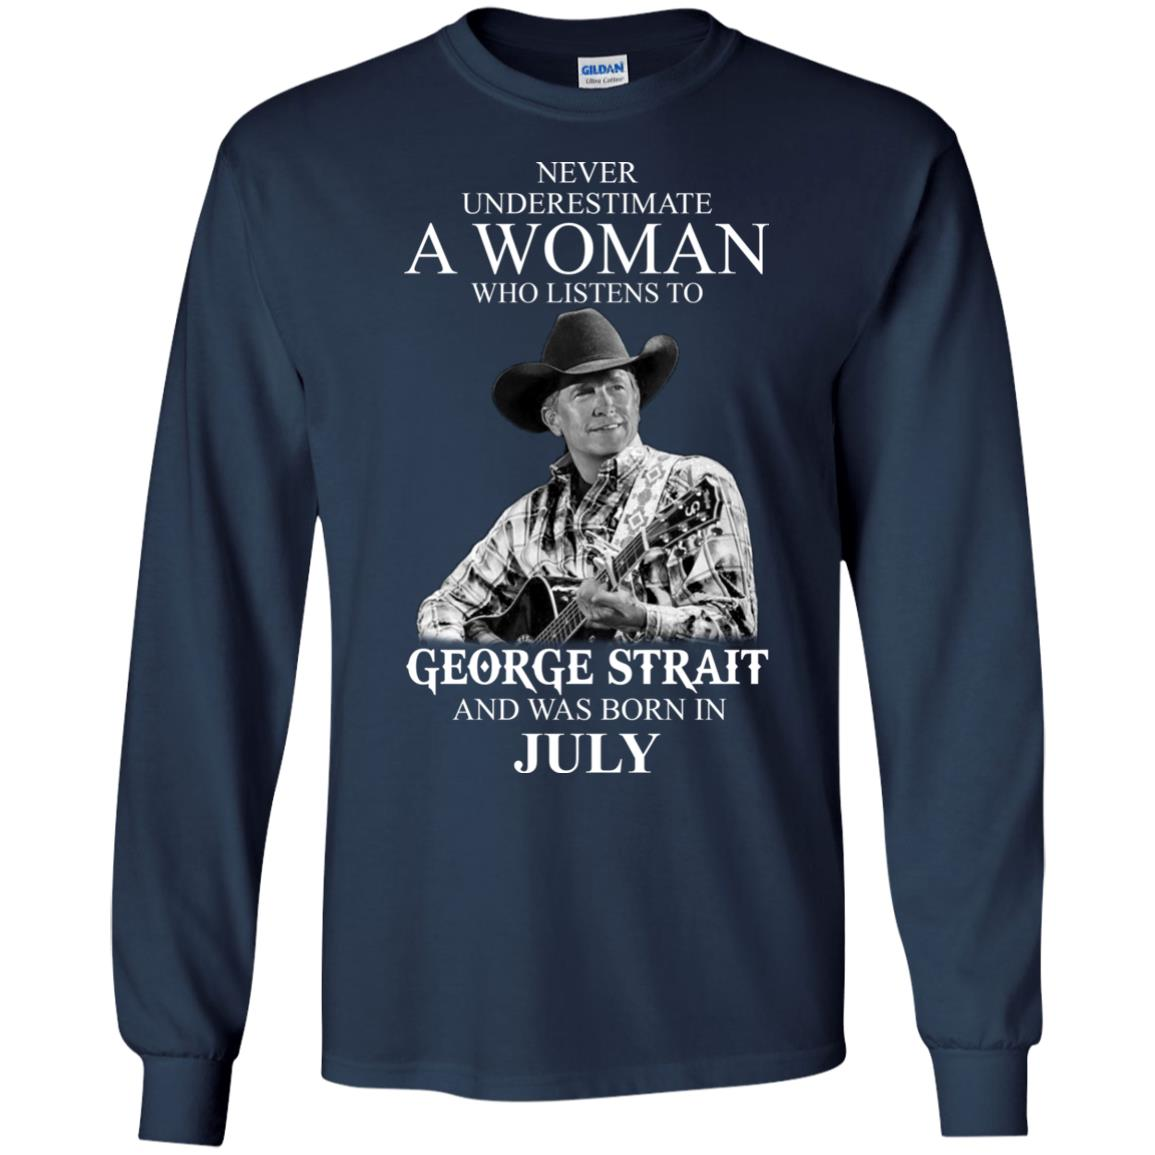 image 401 - Never Underestimate A Woman Who Listens To George Strait And Was Born In July shirt